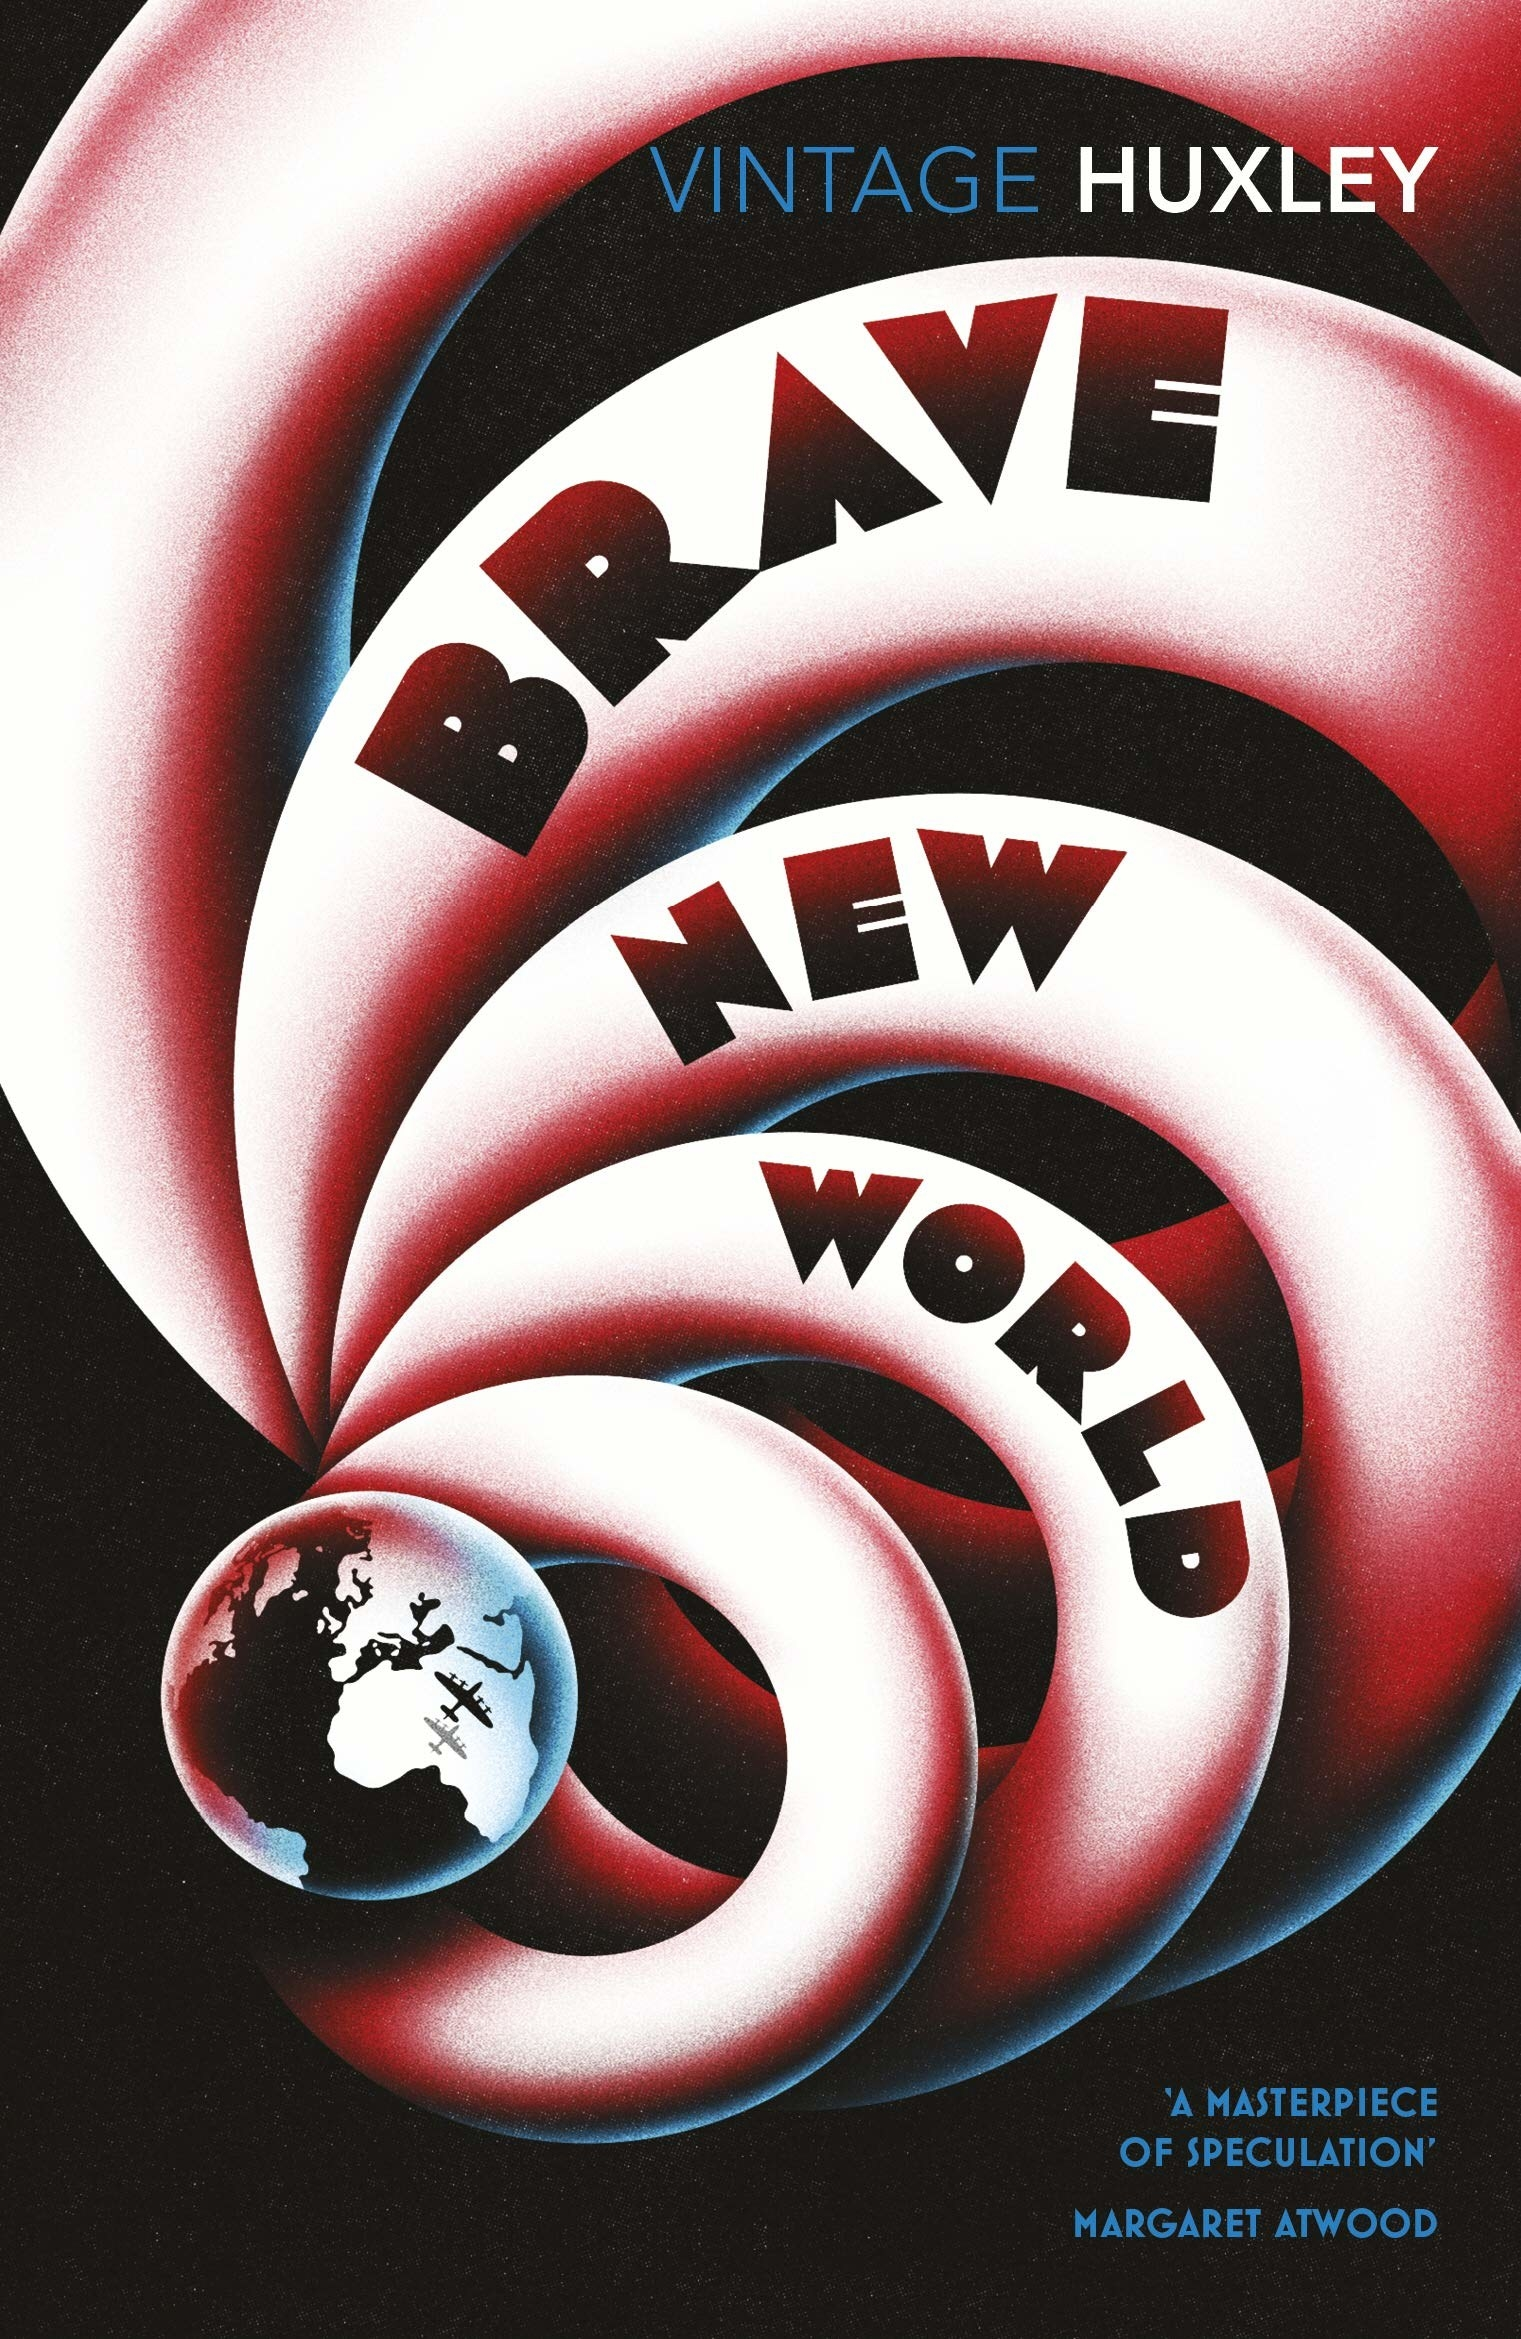 A globe with 3D rings lined up behind it on the book cover for Brave New World